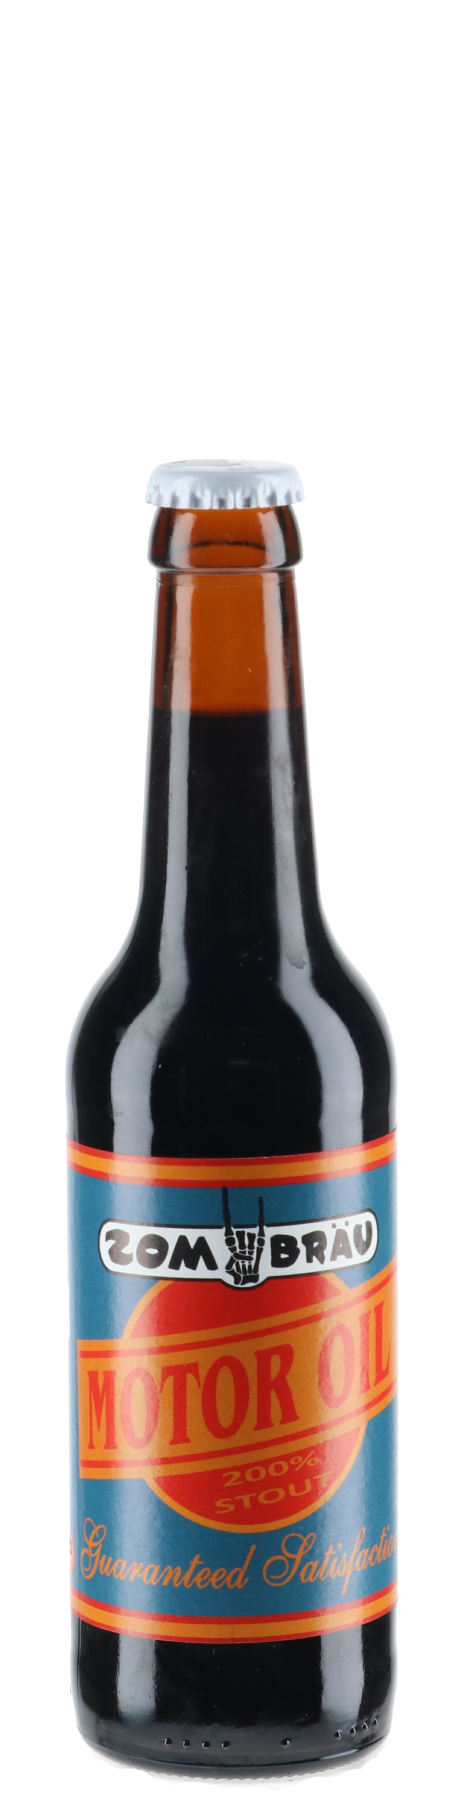 Motor Oil Imperial Stout